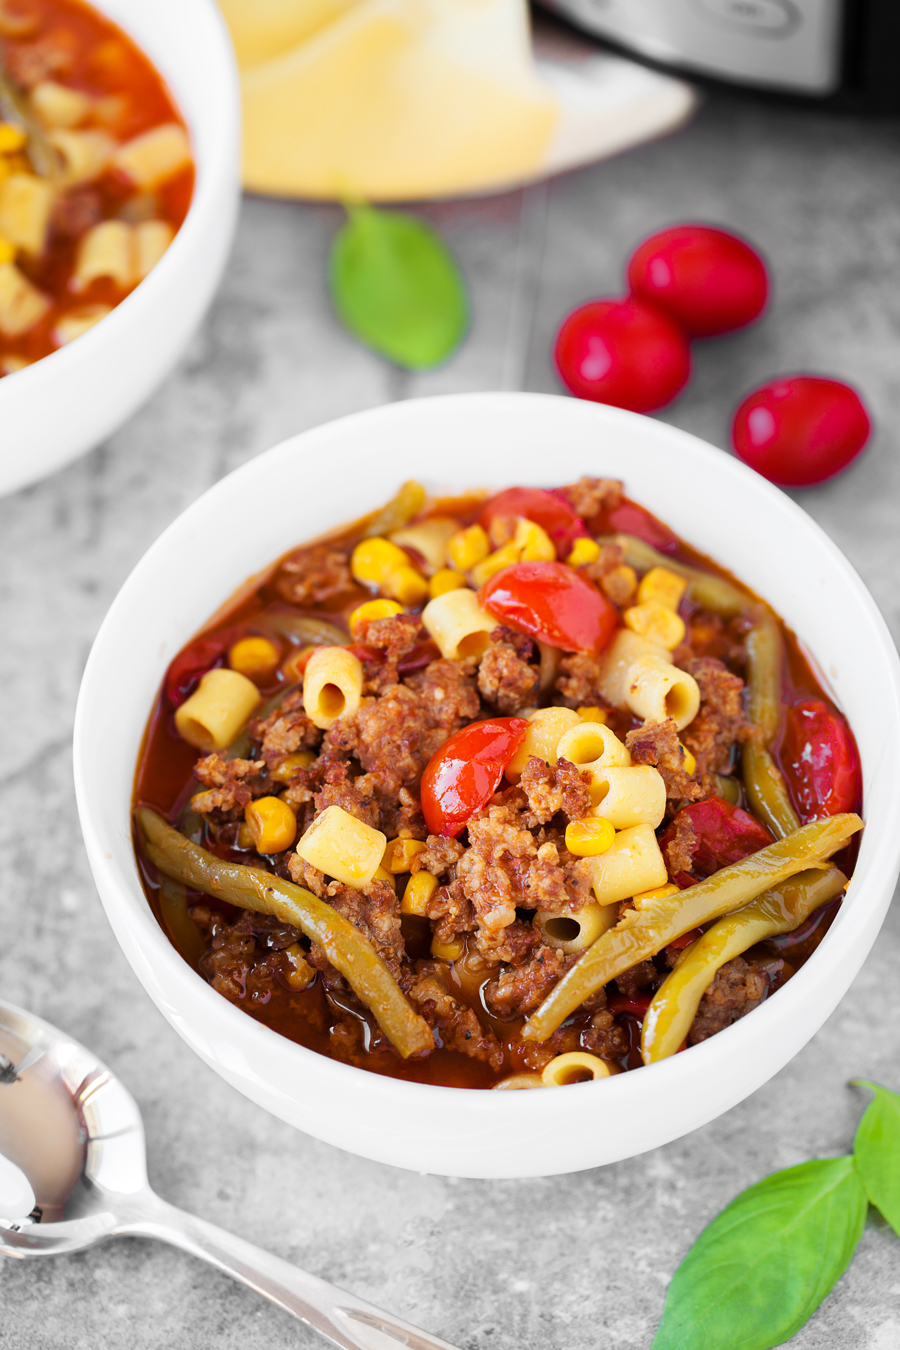 This Slow Cooker Sausage Ditalini soup is full of sausage, tomatoes, green beans and flavor! It's perfect for the cold winter months!